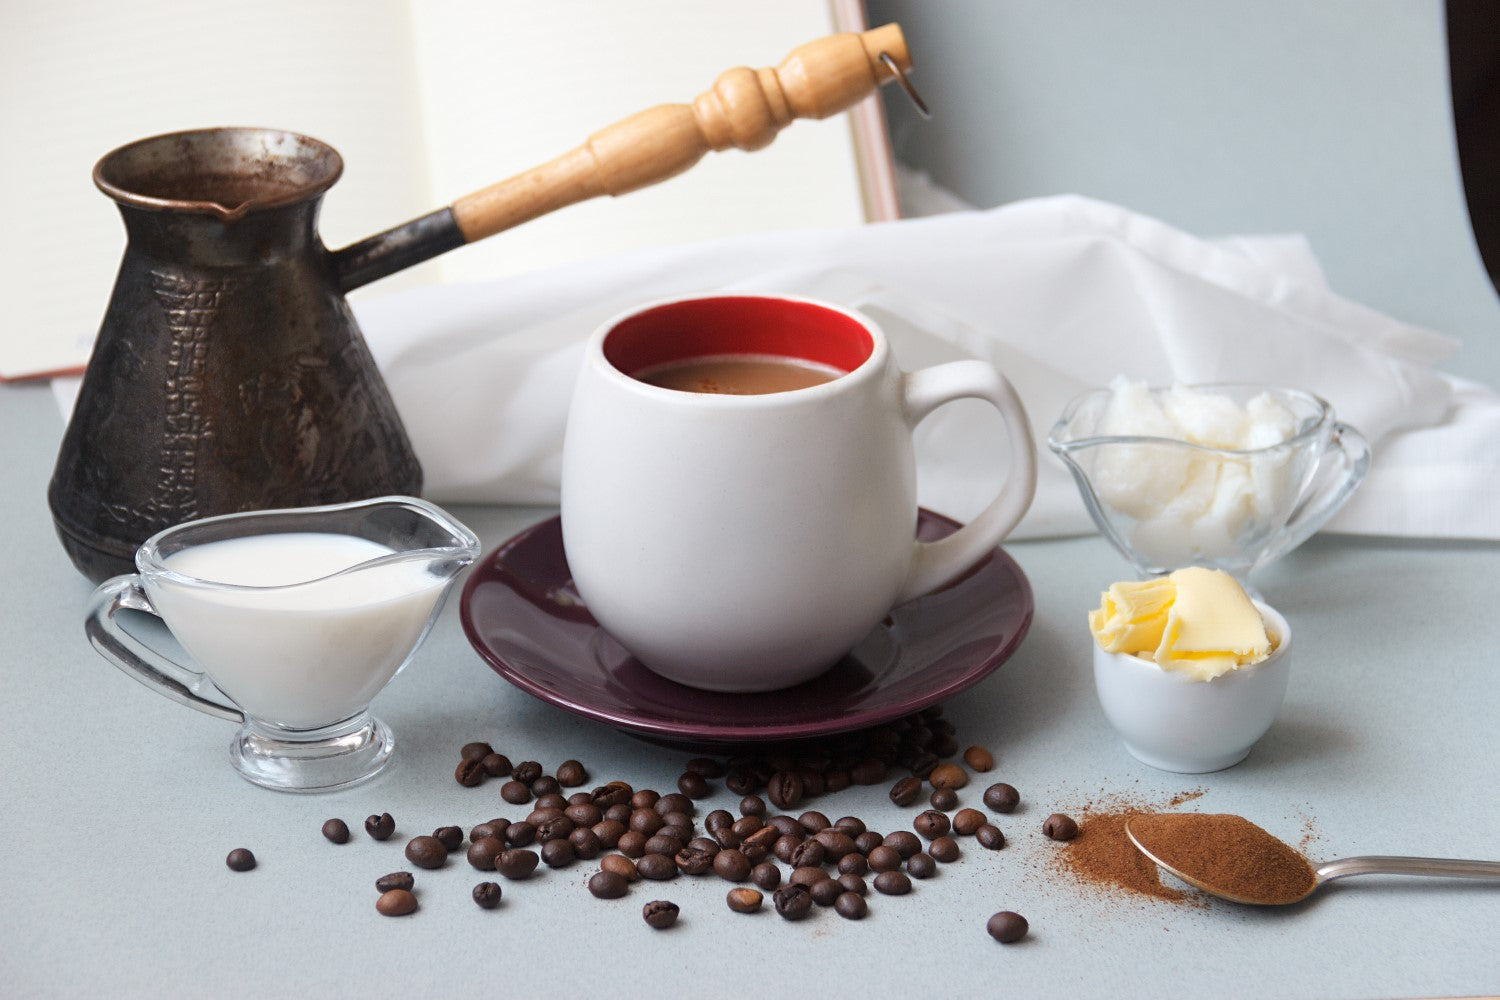 coffee, milk, butter and beans